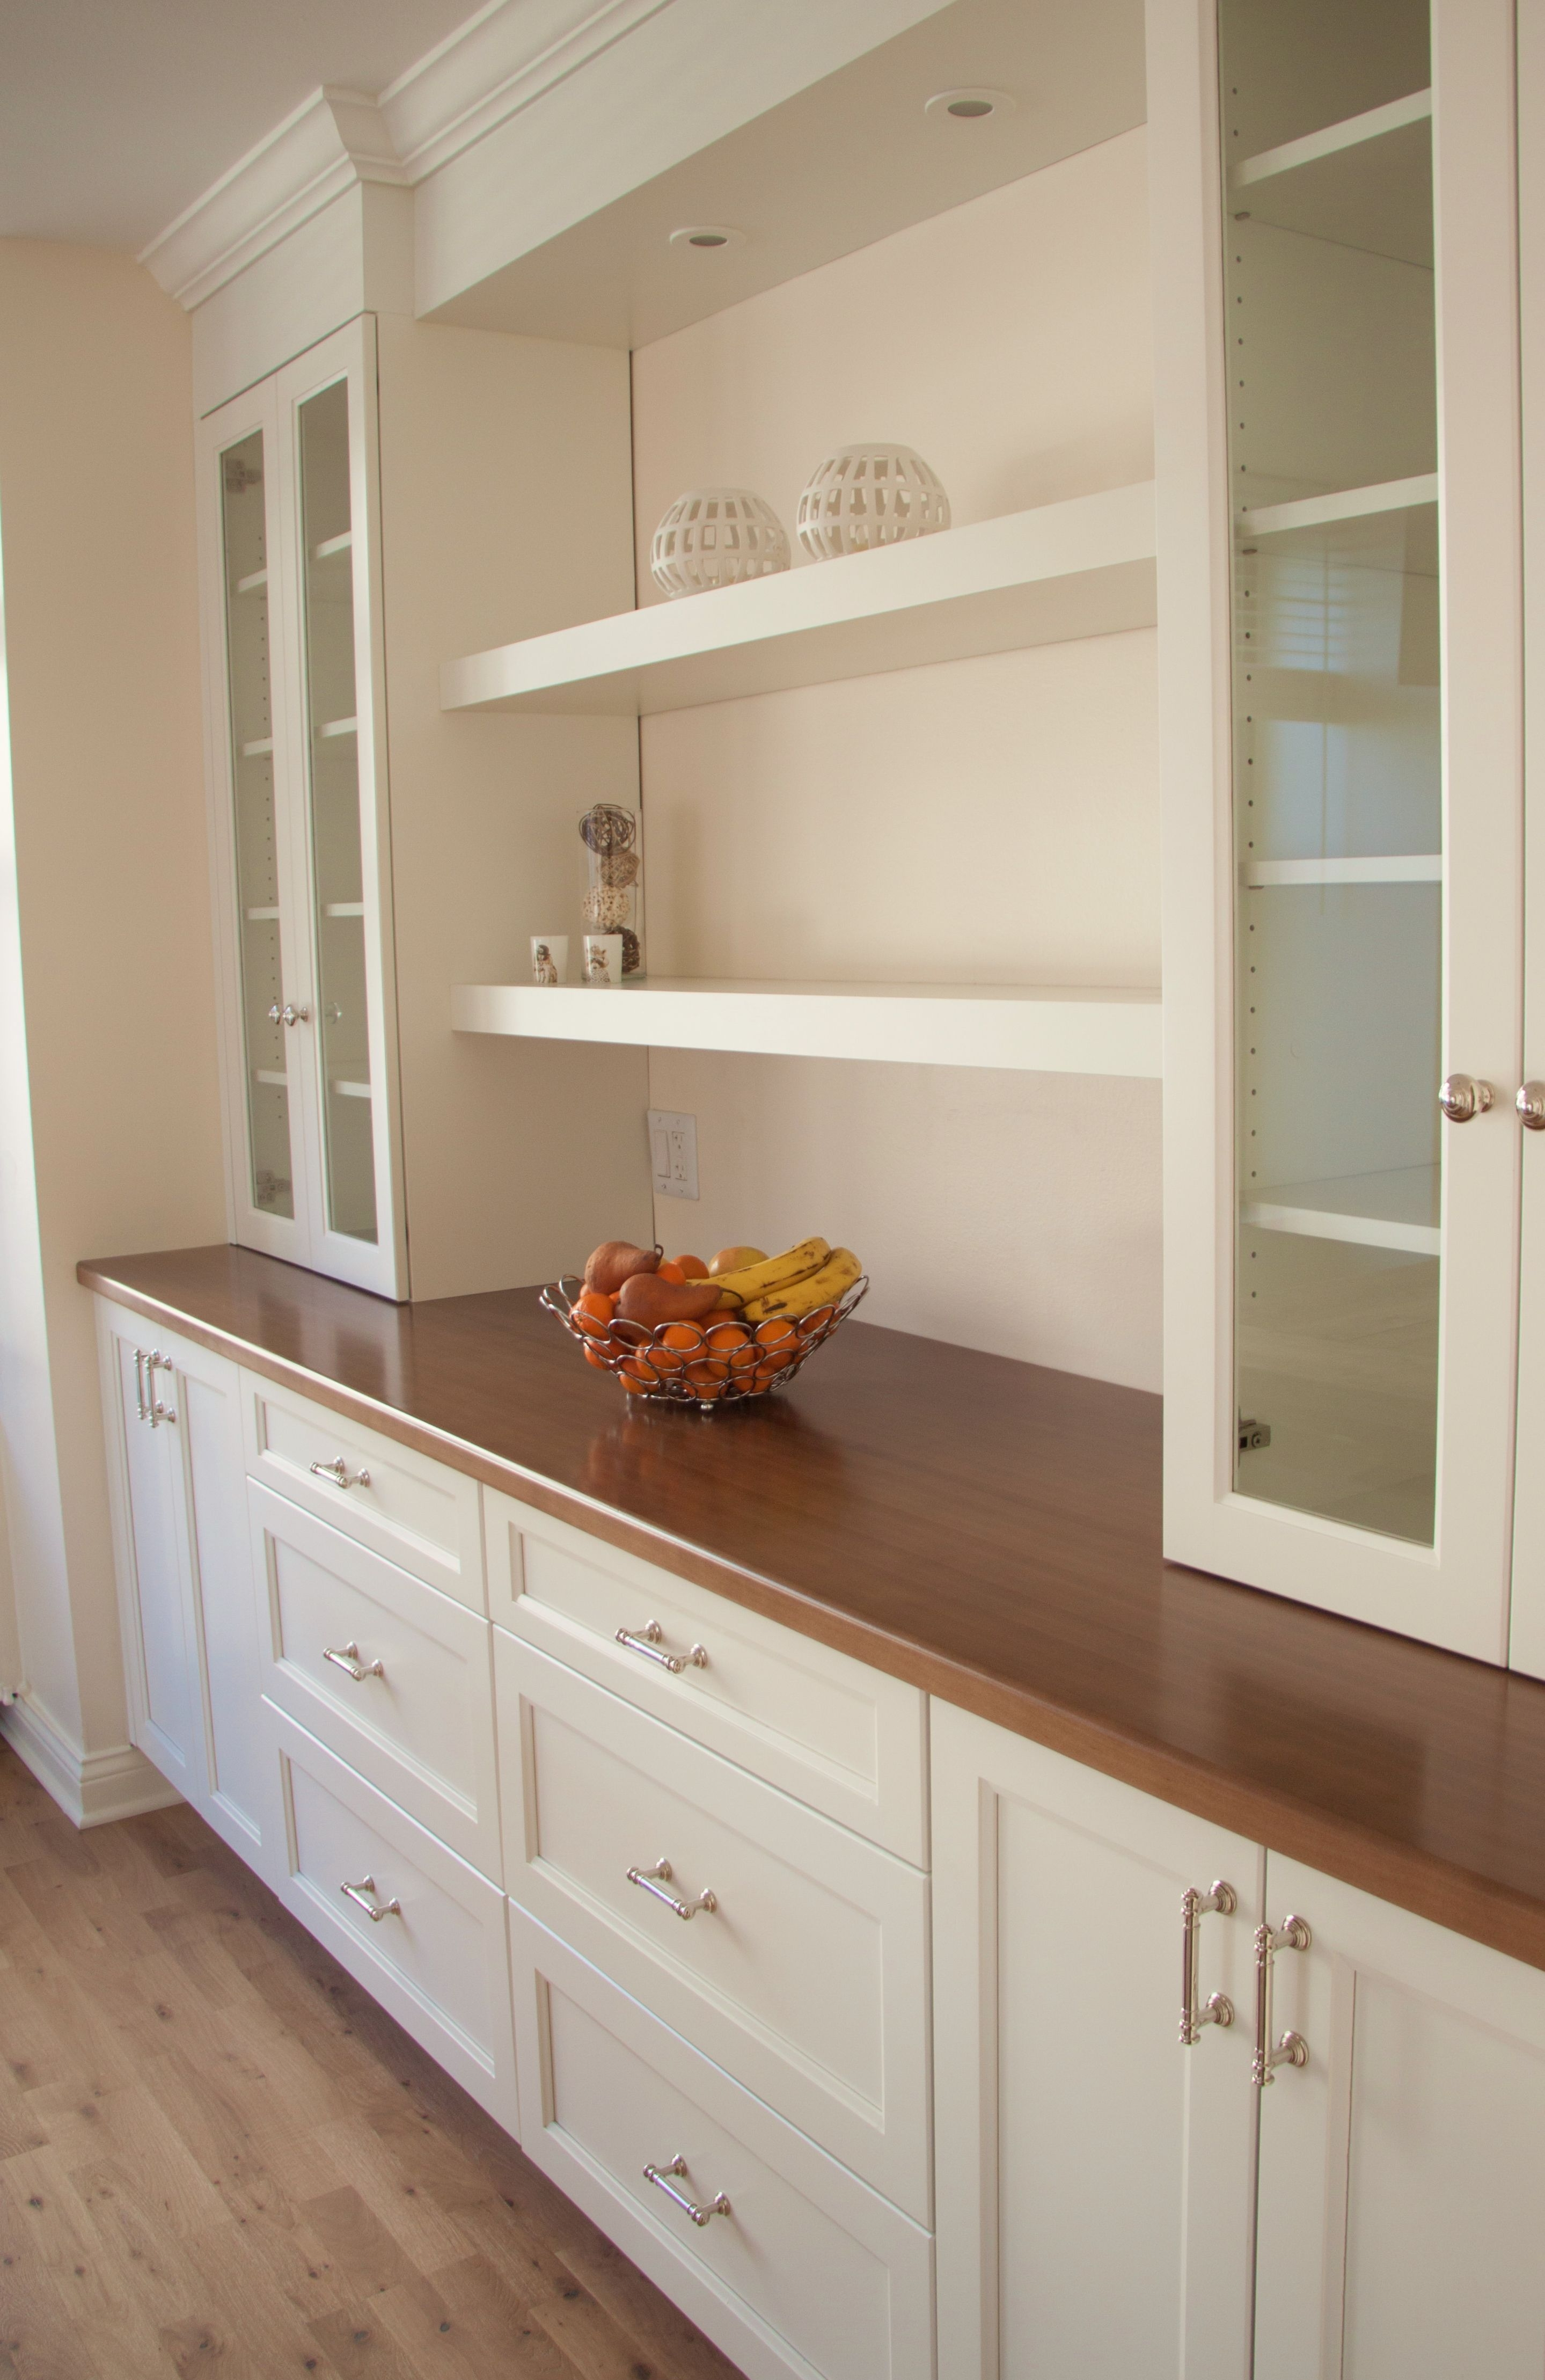 Dining Room Built In Cabinets And Storage Design 1 Pinterest Layjao